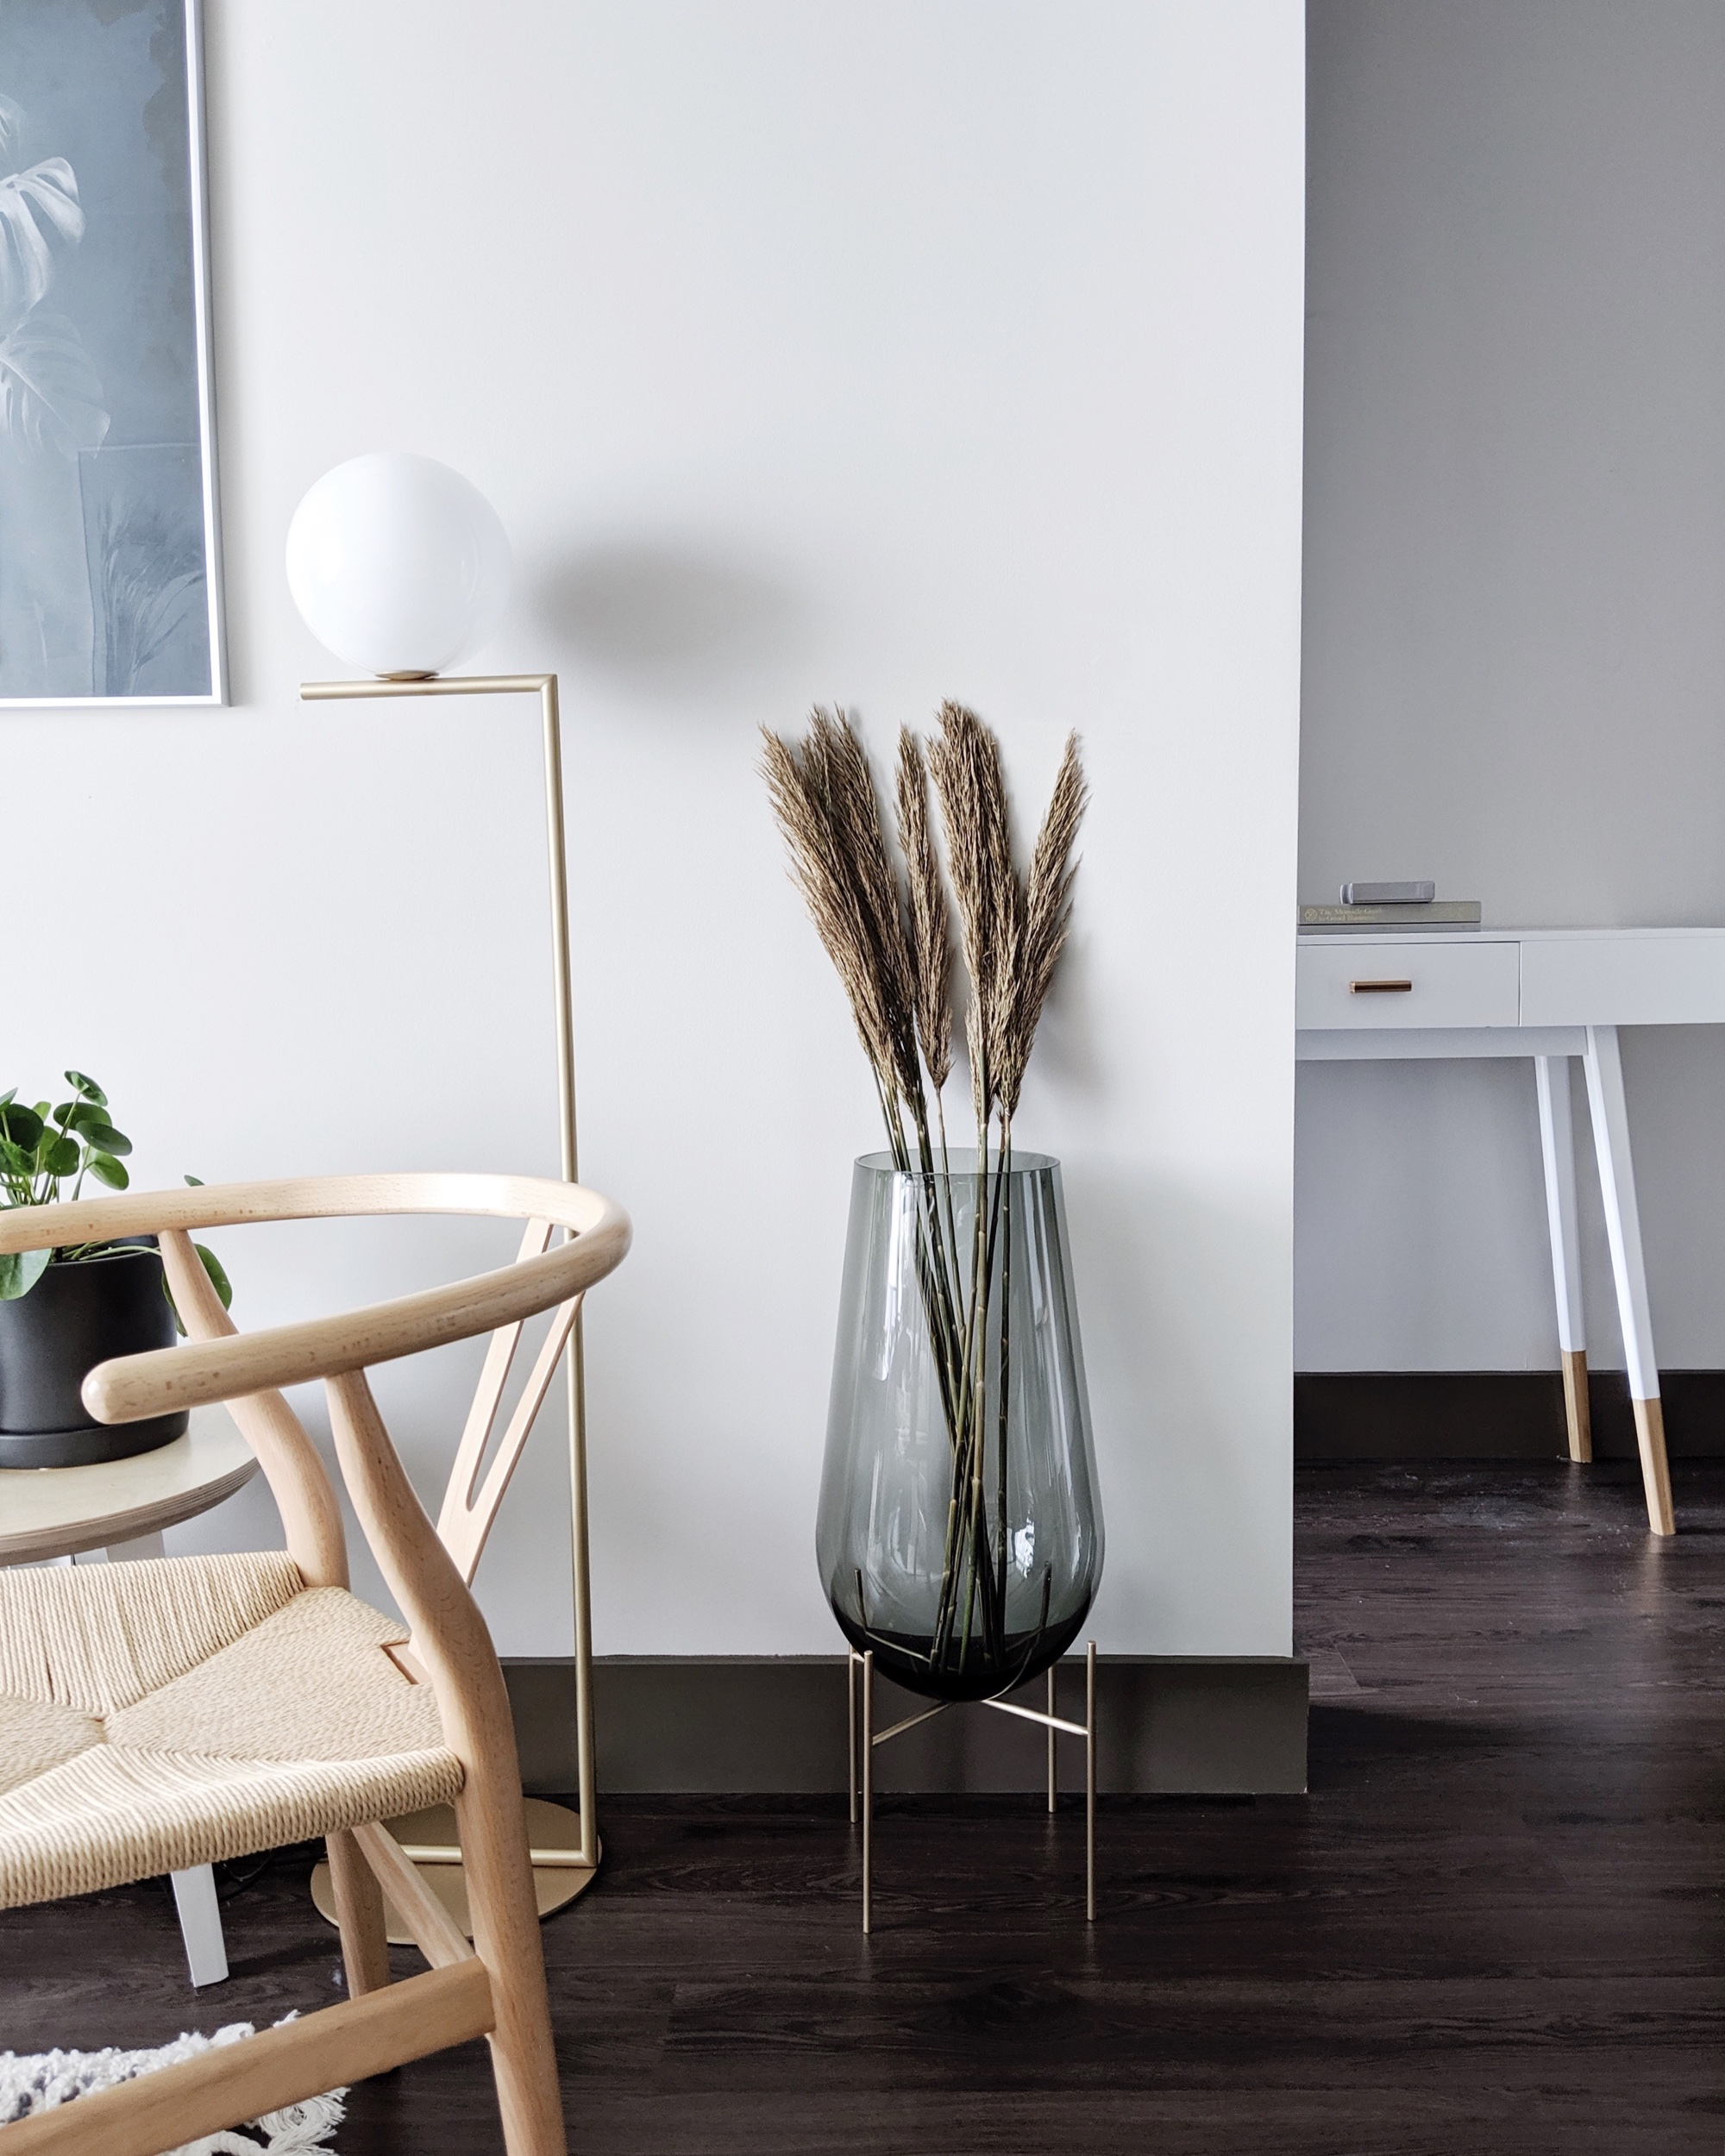 Vase  |  Lamp  |  Chair  |  Plant  |  Features gifted products